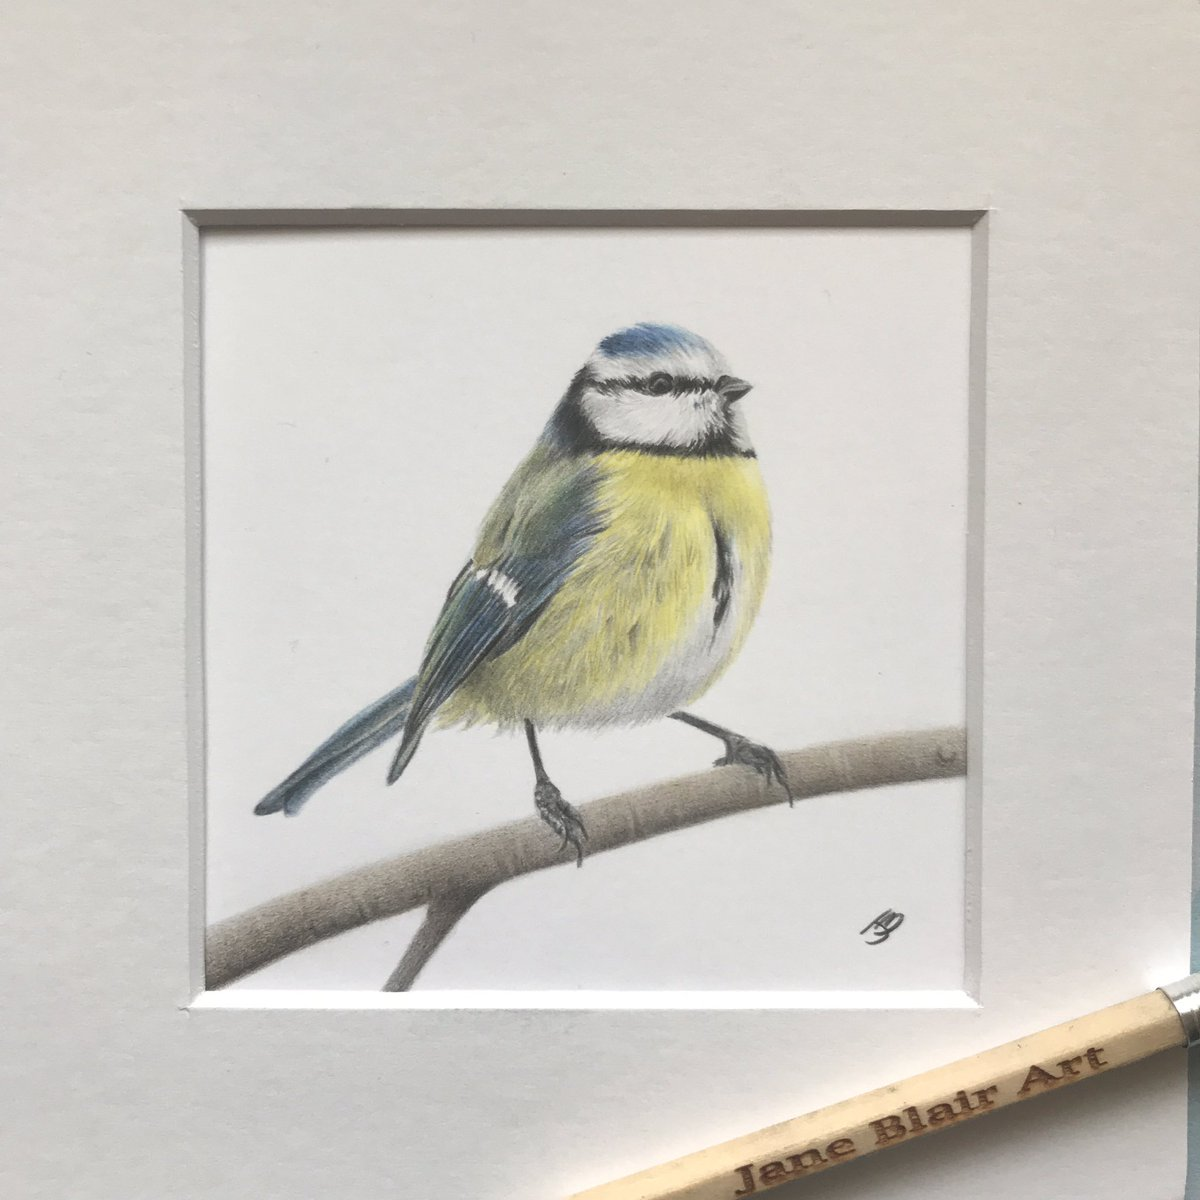 """Newest art for sale - little blue tit drawn in colour pencil. Mounted, ready to fit 6""""x6"""" frame. Own some original art! Looking for offers, prints to follow ✏️✏️✏️ #UKGiftHour #artforsale #QueenOf #ArtistOnTwitter #smeuk #shopindie #giftideas #crafturday #smallbizsatuk"""